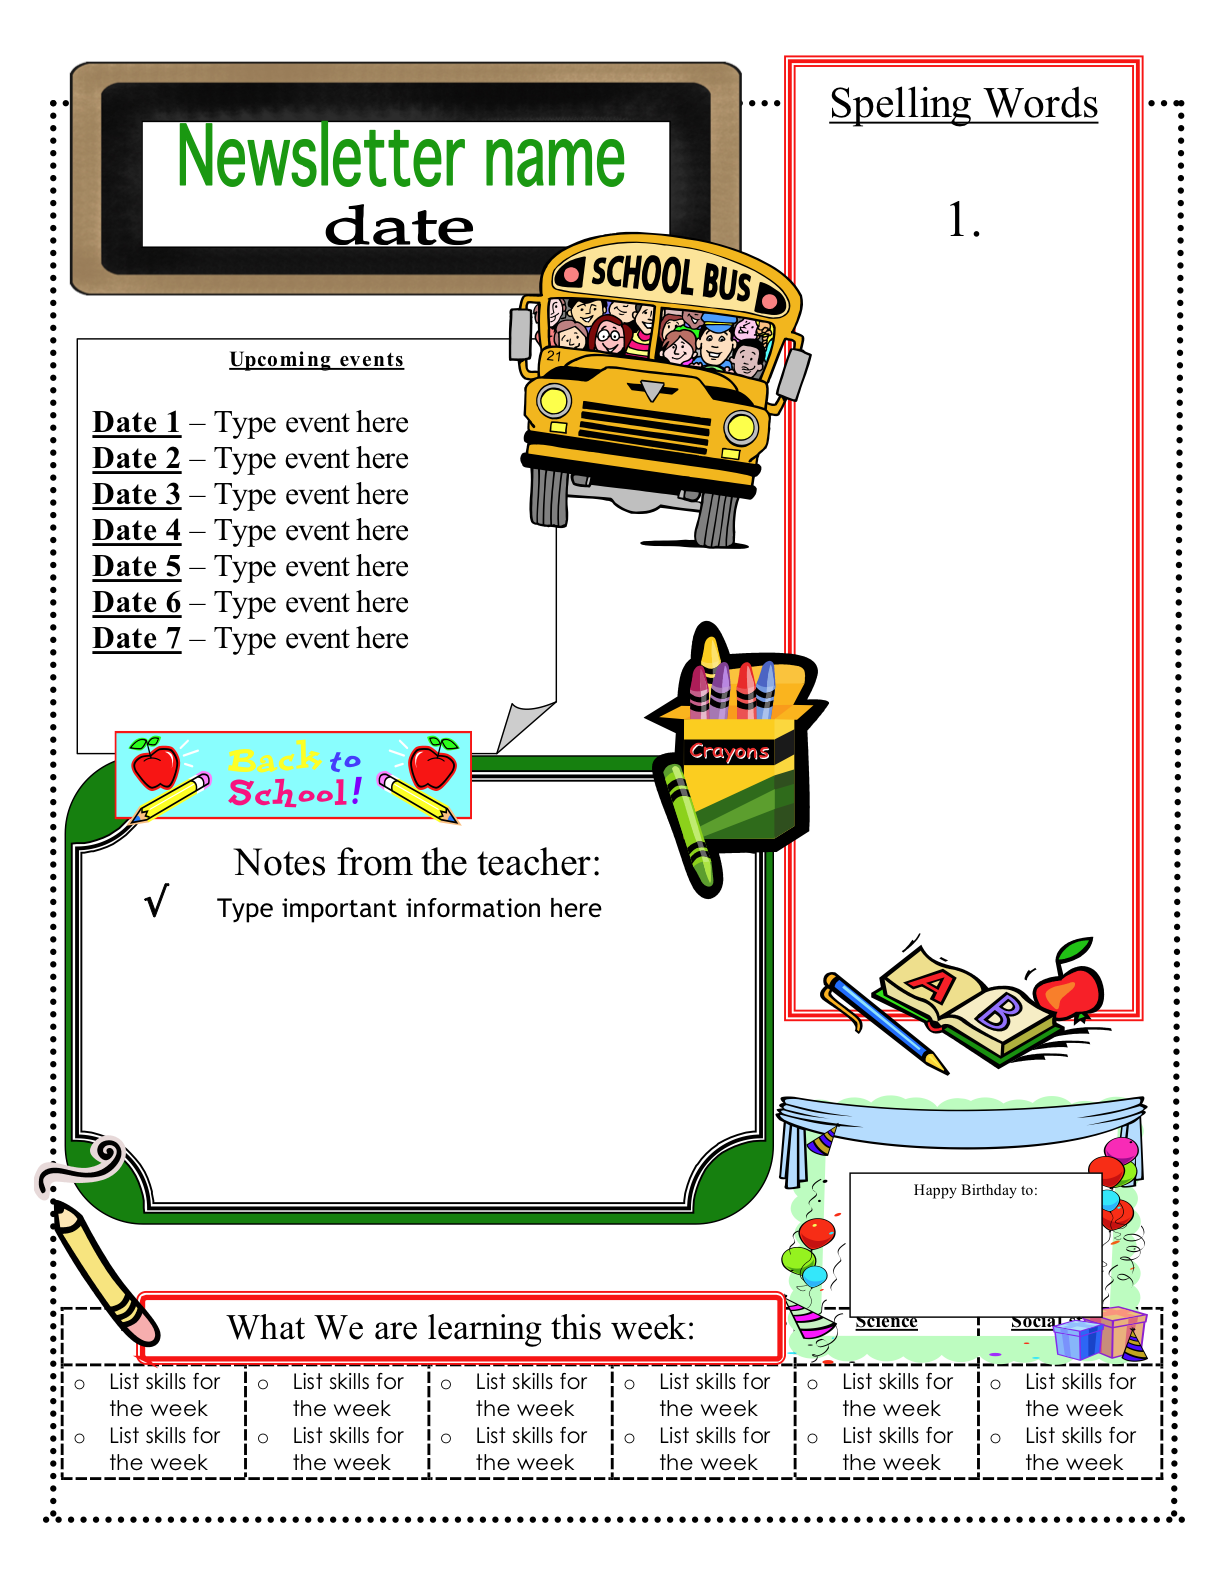 Back+to++Newsletter Teacher Newsletter Templates Free on teacher checklist template, fingerprint tree teacher gift template, free teacher brochure, free teacher clip art, free teacher business card, free teacher powerpoint templates, free teacher fonts, tree no leaves template, free teacher lesson plan book, training evaluation survey template, free teacher cartoons, free templates for teachers, free teacher graphics, cartoon tree powerpoint template, teacher anecdotal notes template, cute list template, blank chart template,